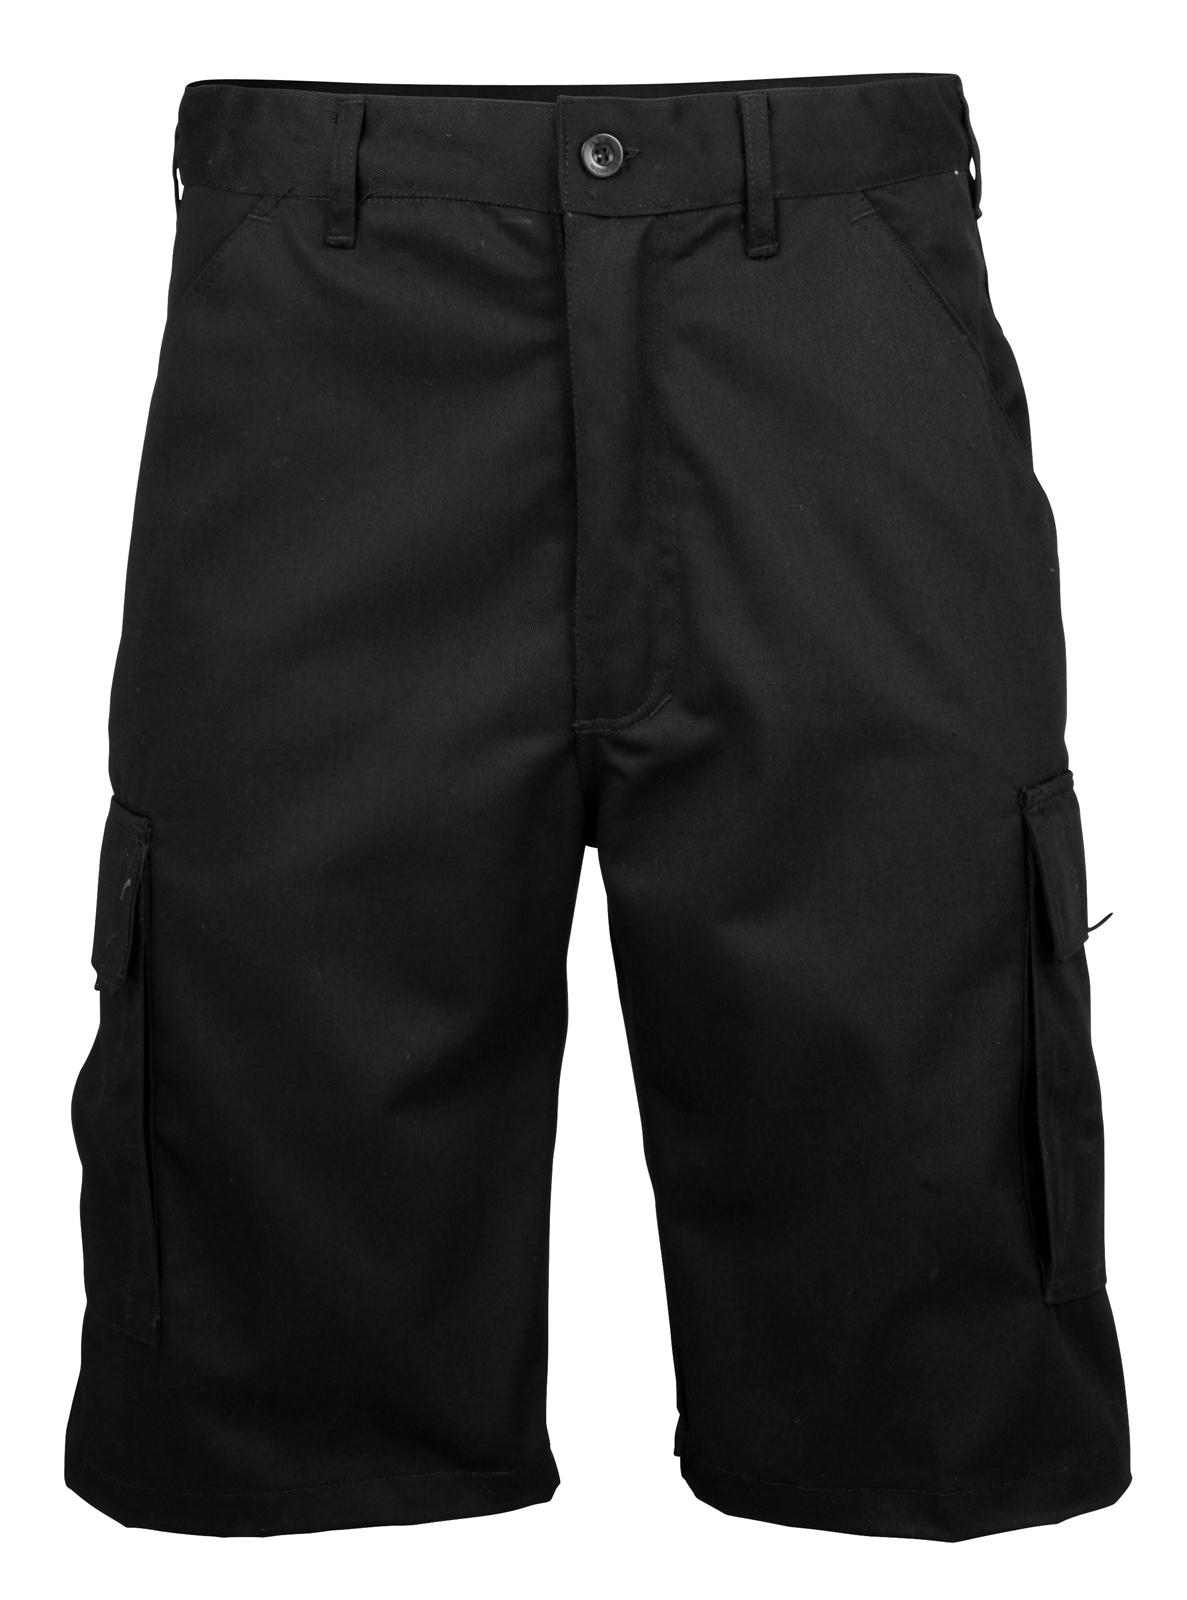 New RTY Mens Work Wear Polycotton Casual Cargo Shorts in Black ...